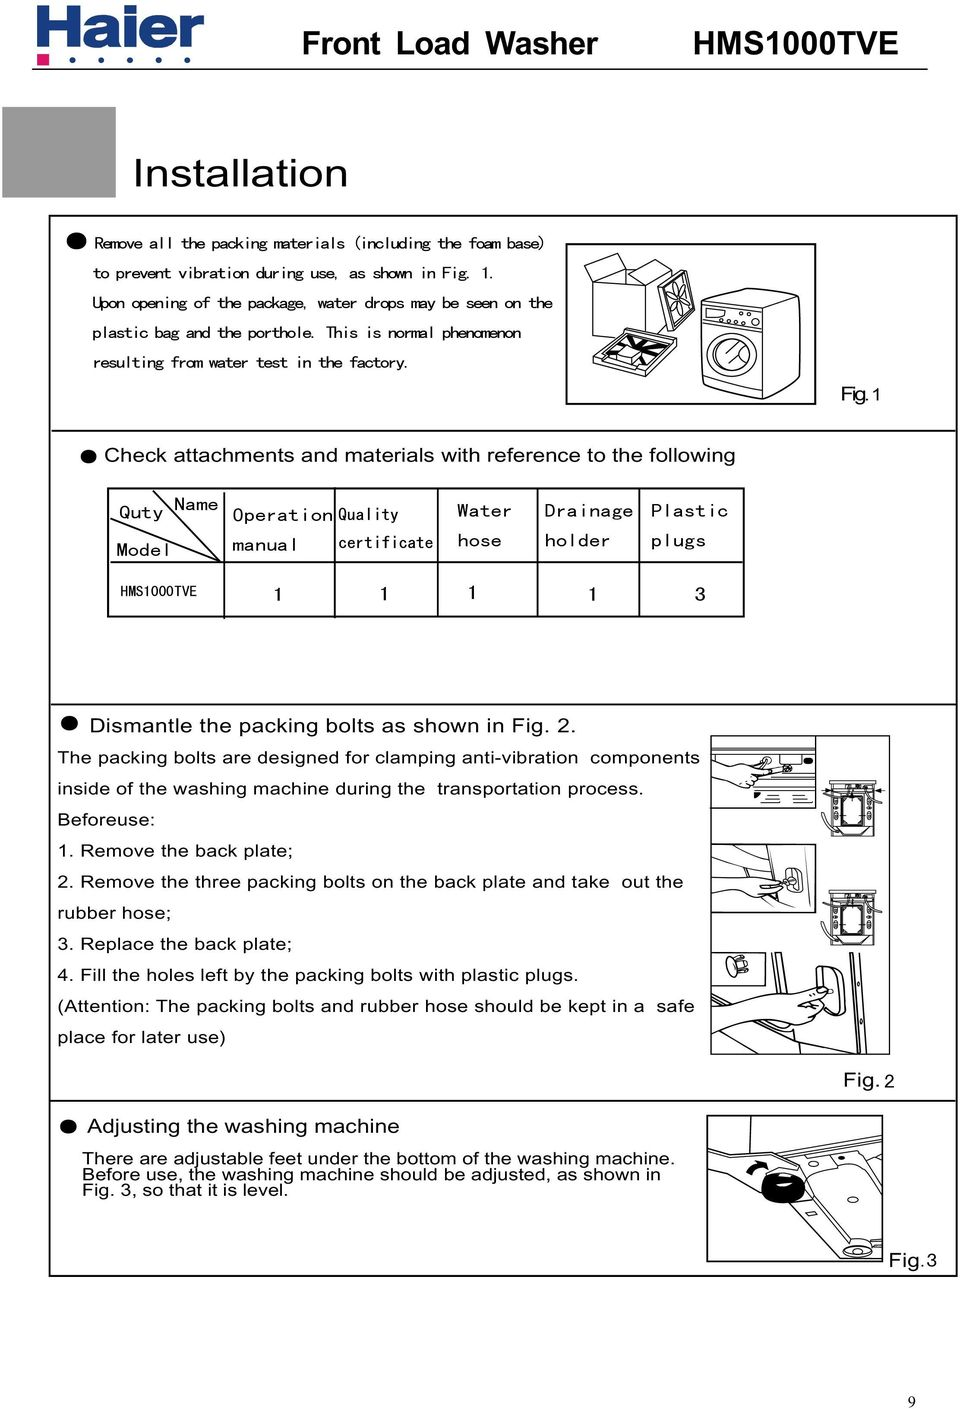 Service Manual Model Hms1000tve Features Code Front Loading Haier Washing Machine Wiring Diagram Remove The Three Packing Bolts On Back Plate And Take Out Rubber Hose 11 Hms700tve Installation Joining Inlet To